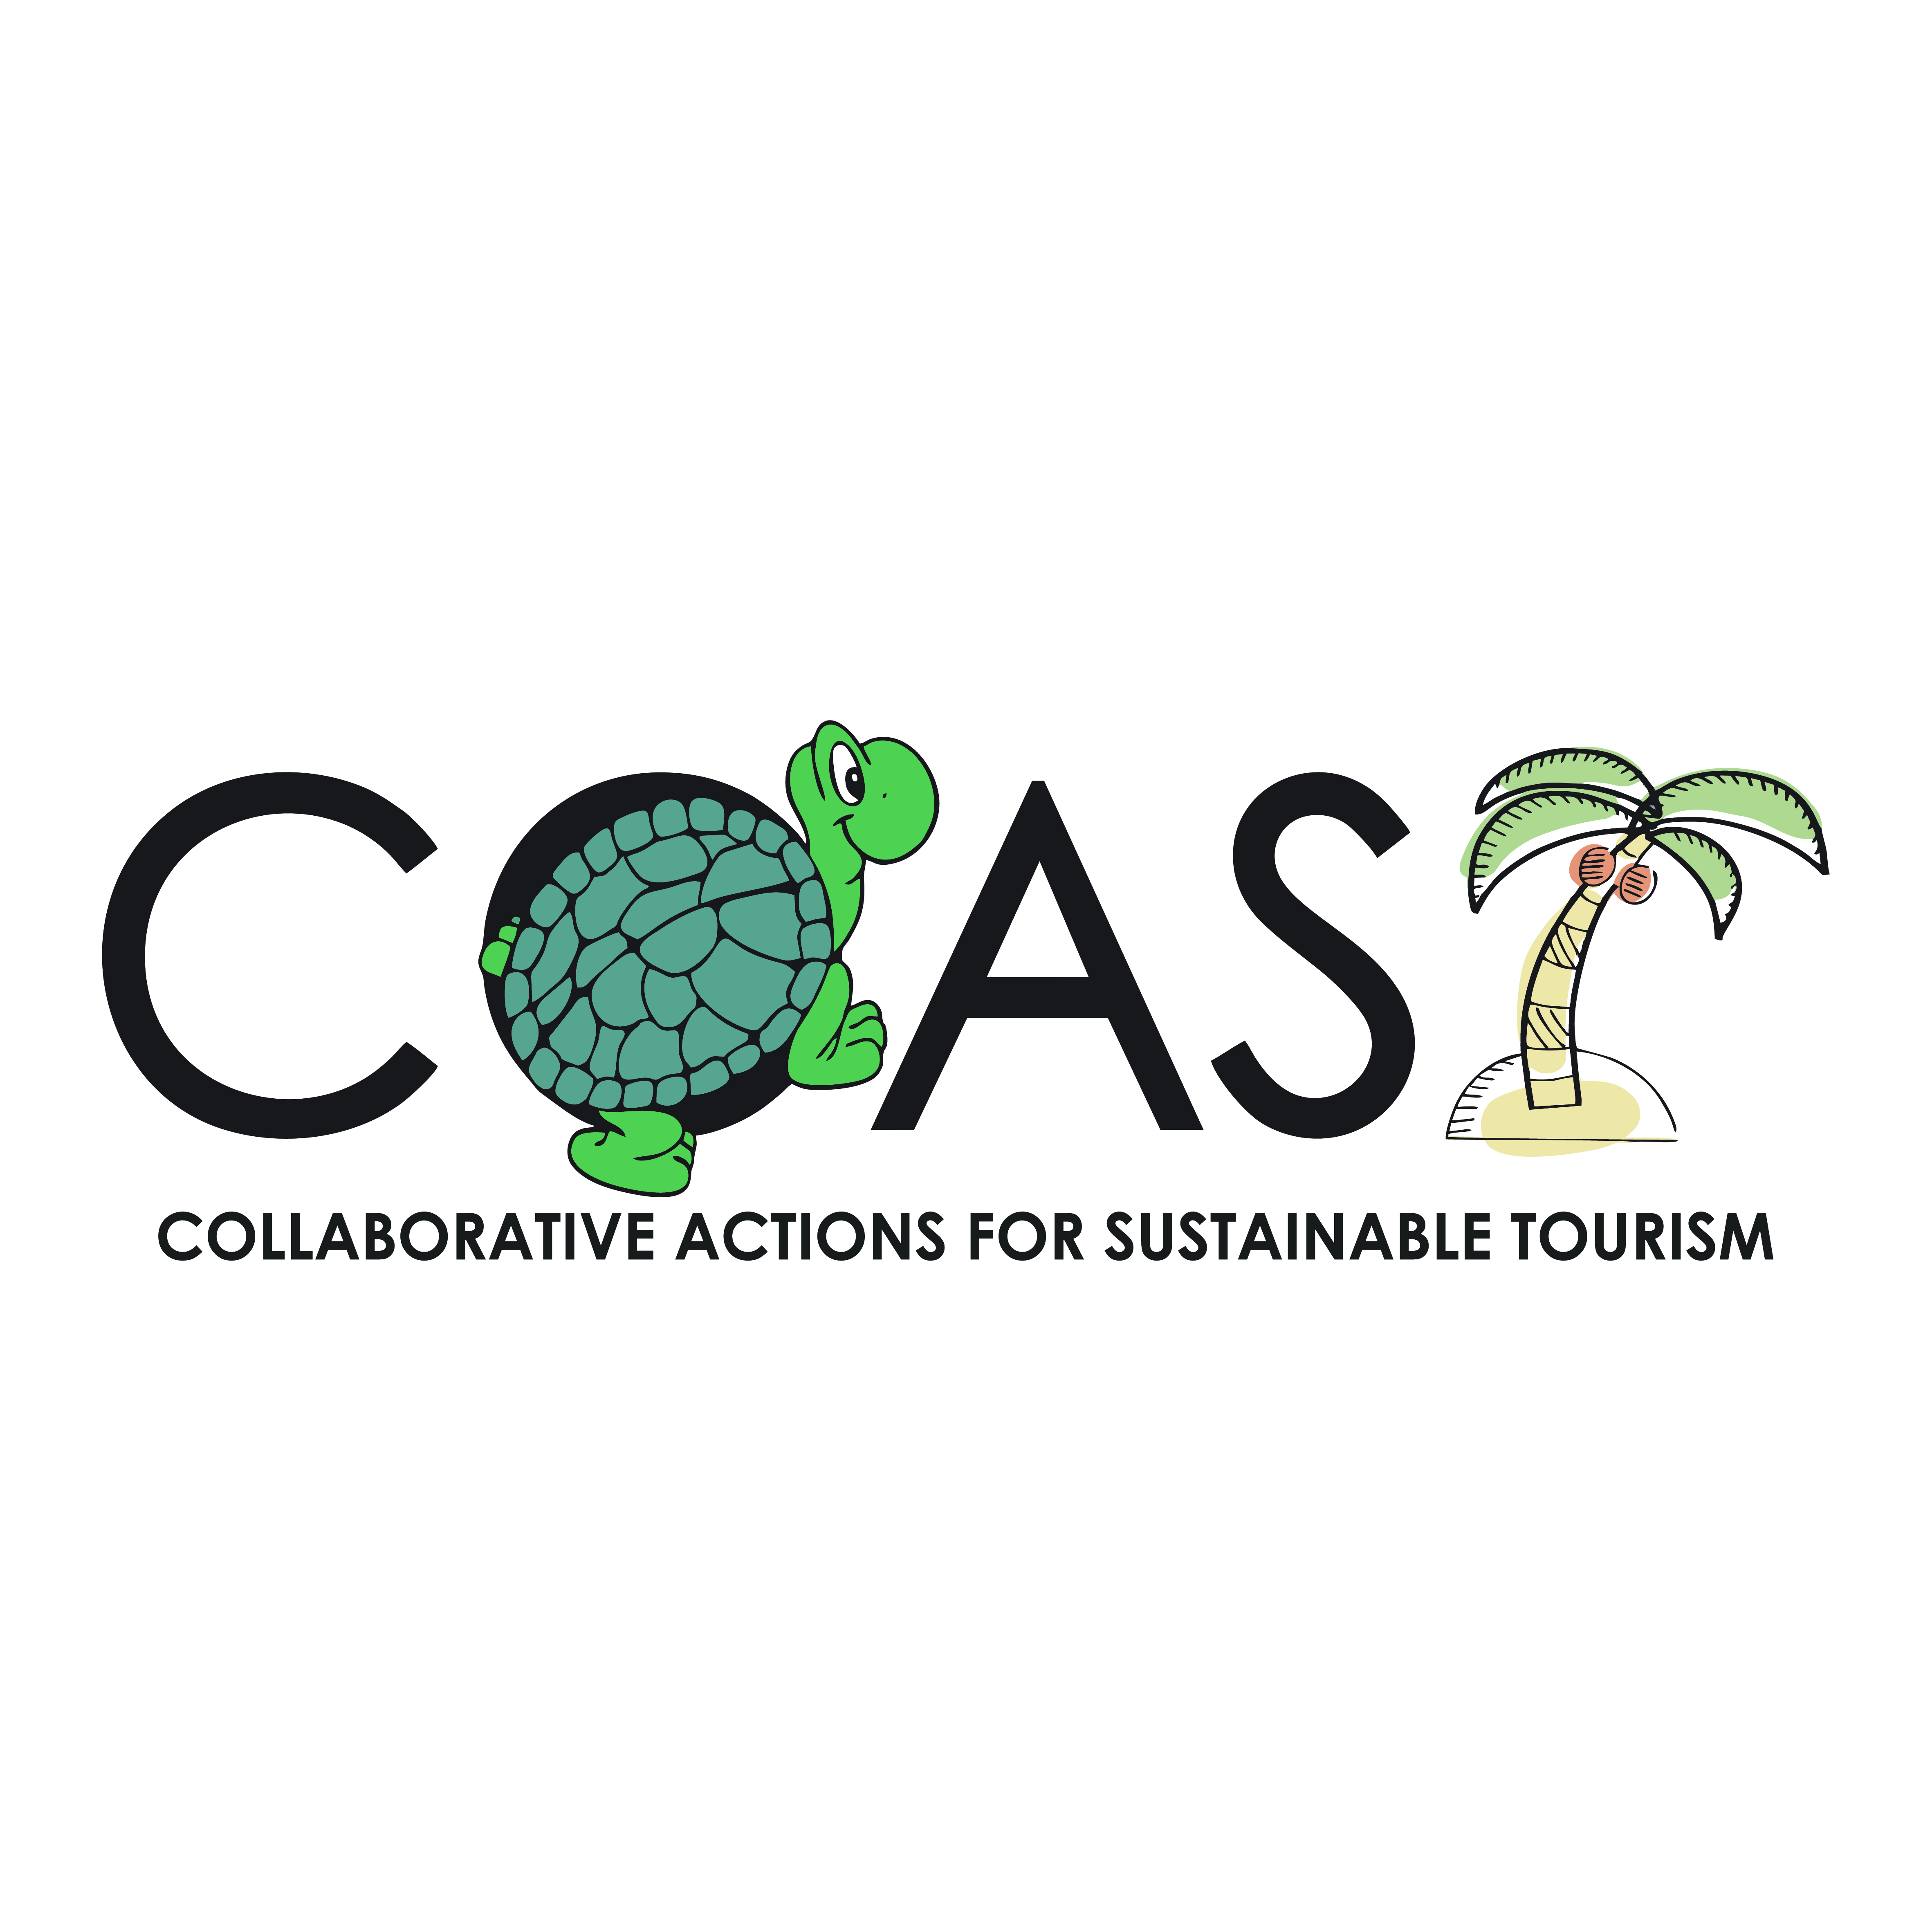 THE COAST PROJECT AT THE GEF IWC7 CONFERENCE IN BARBADOS